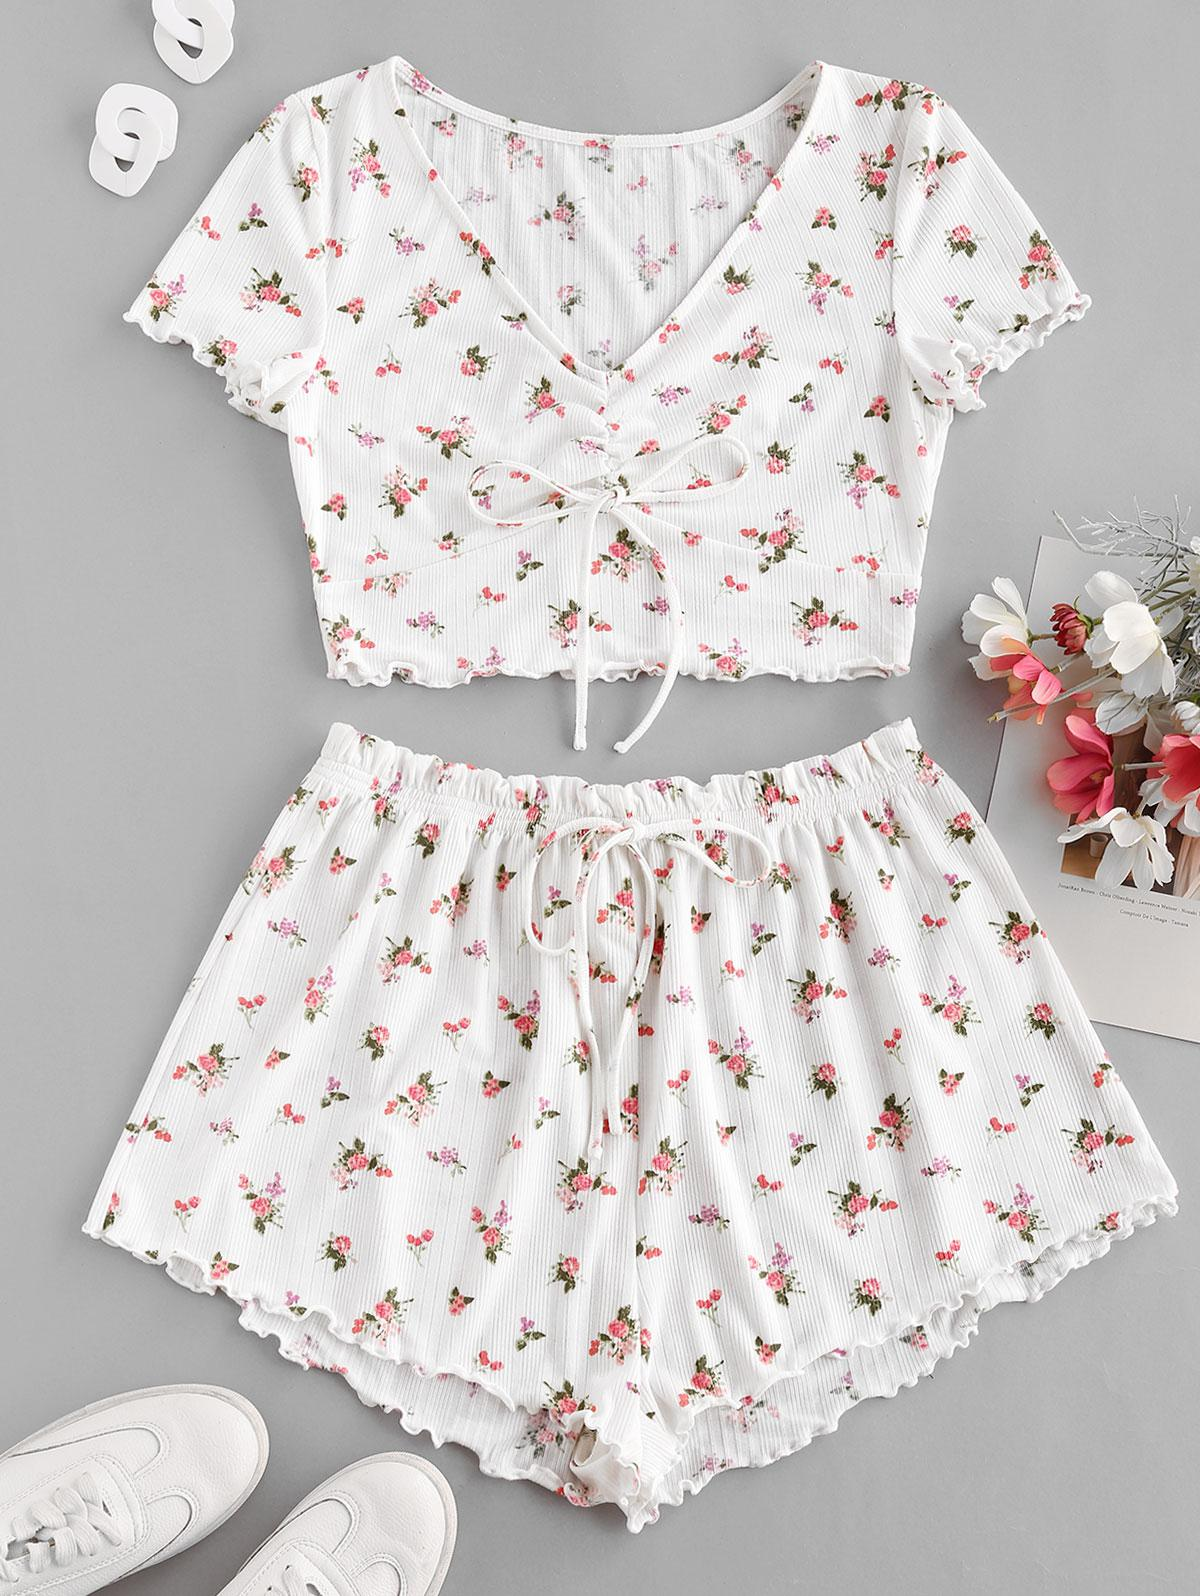 ZAFUL Floral Lettuce Trim Cinched Ruffle Ribbed Shorts Set